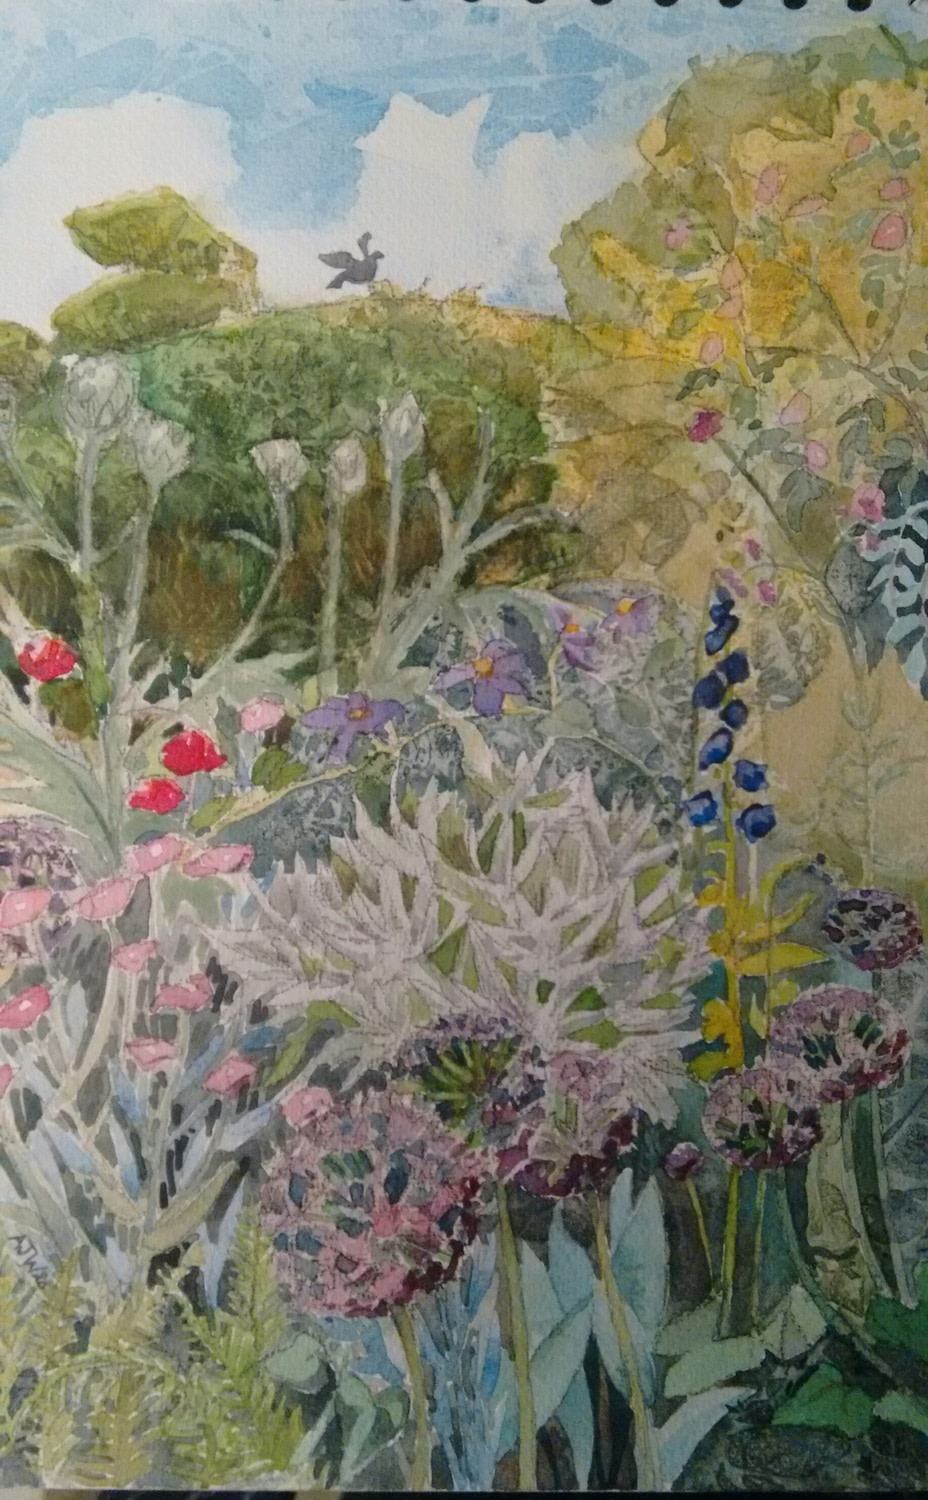 """<span class=""""link fancybox-details-link""""><a href=""""/exhibitions/36/works/image_standalone4904/"""">View Detail Page</a></span><p>Alison Warner</p><p><em>Perennial Border and Yew, Great Dixter</em></p><p>charcoal & watercolour</p><p>£400</p>"""